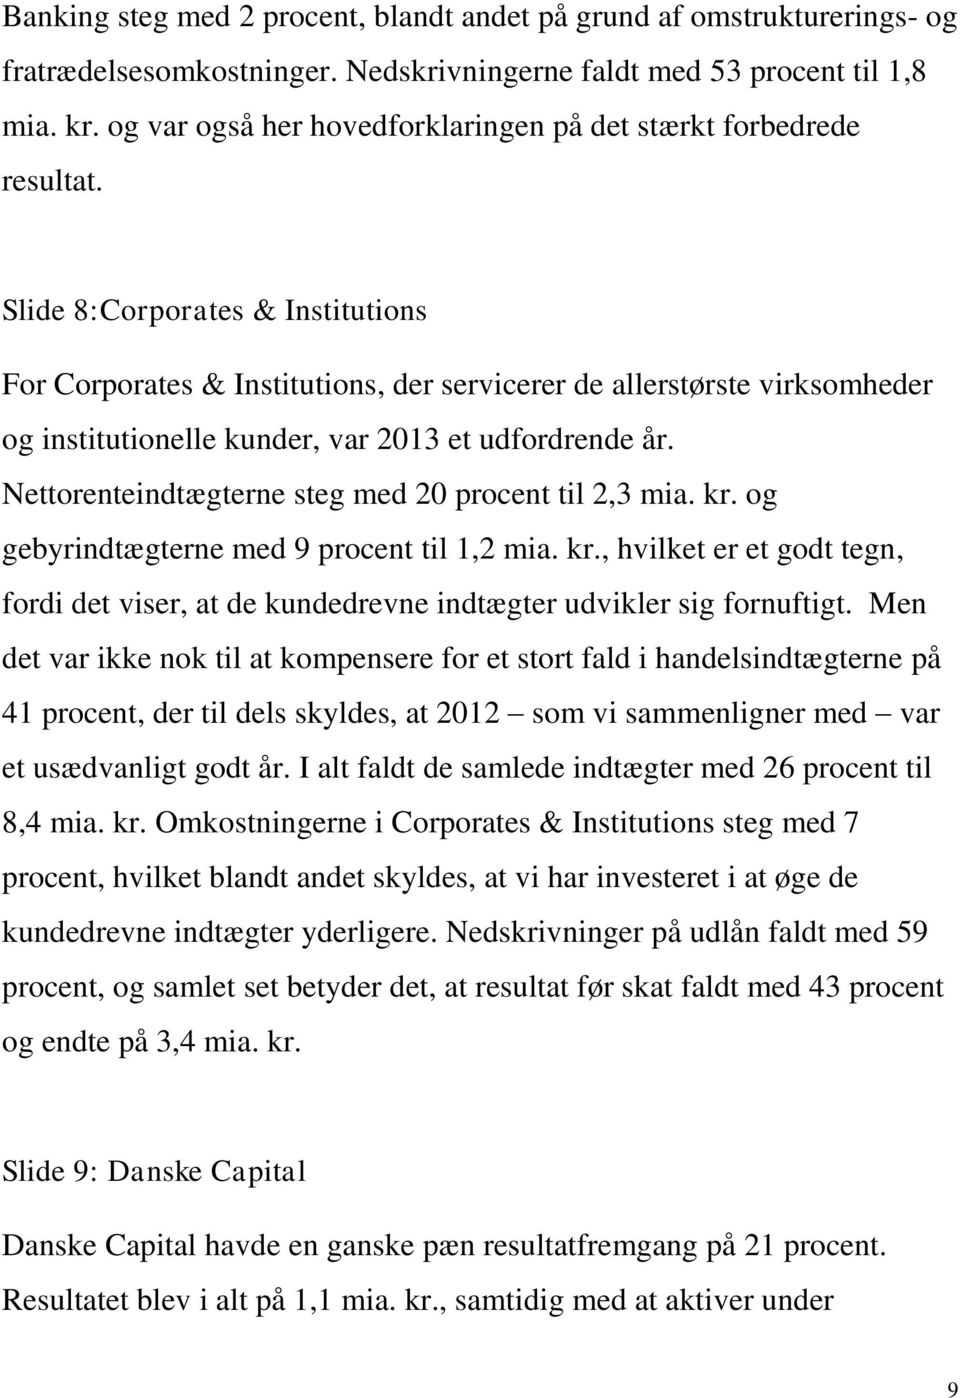 Slide 8:Corporates & Institutions For Corporates & Institutions, der servicerer de allerstørste virksomheder og institutionelle kunder, var 2013 et udfordrende år.